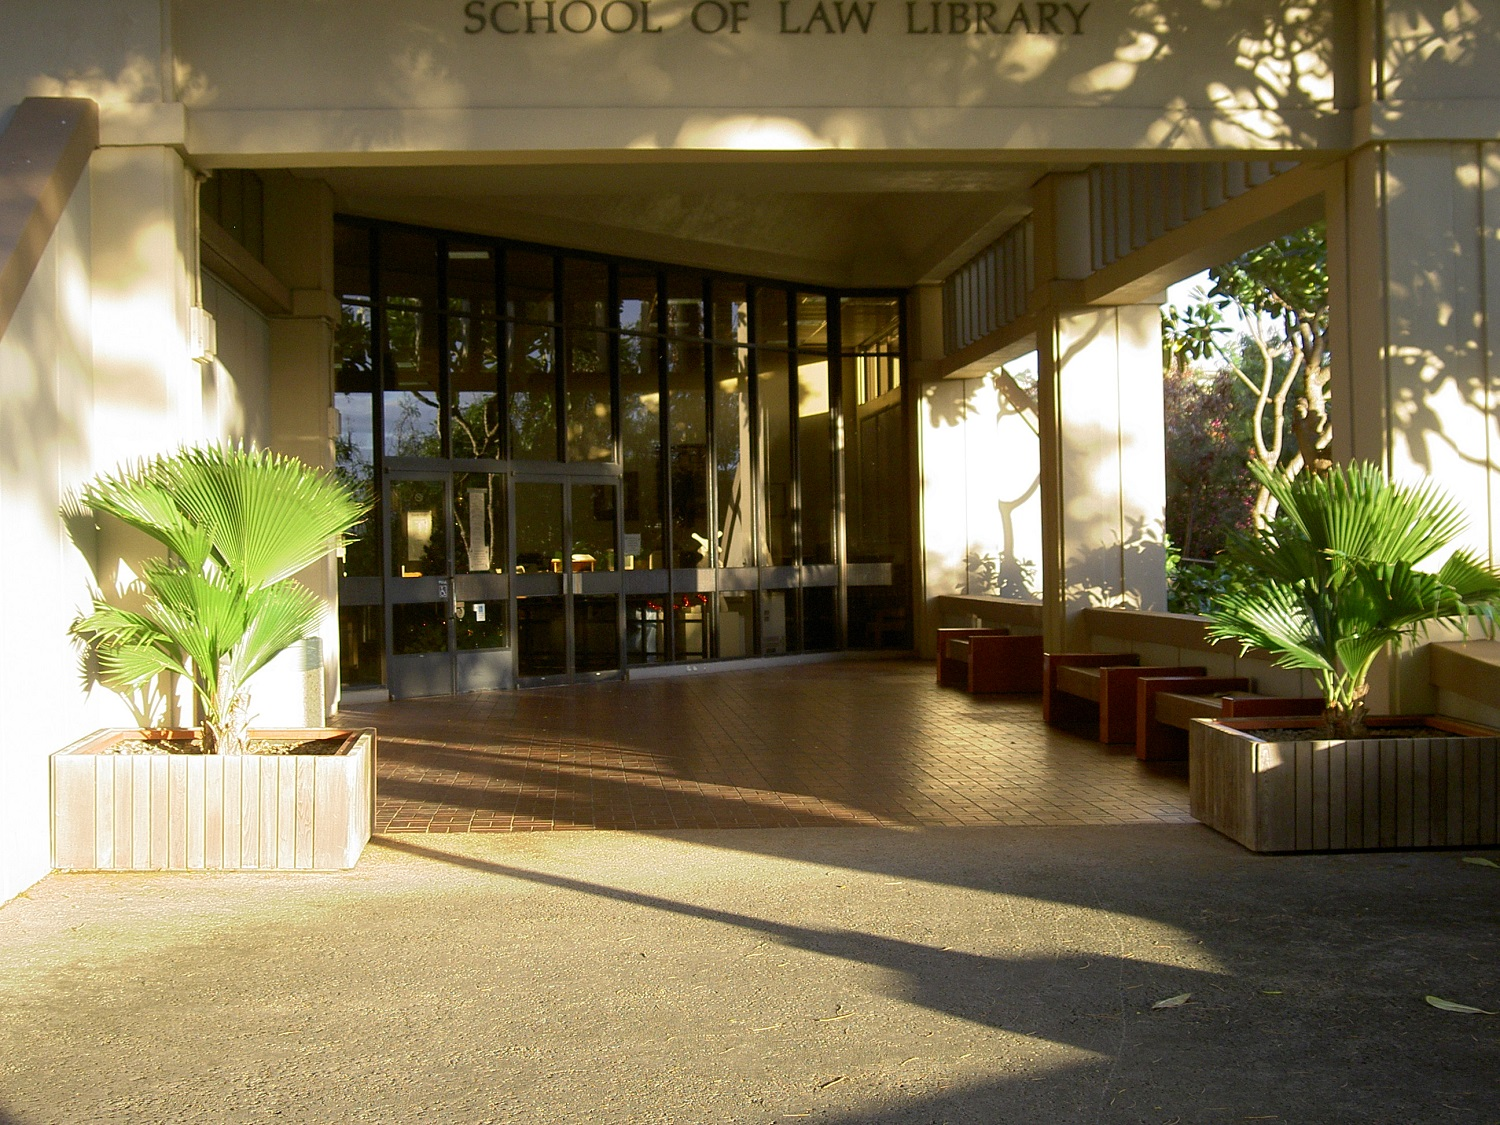 library entrance